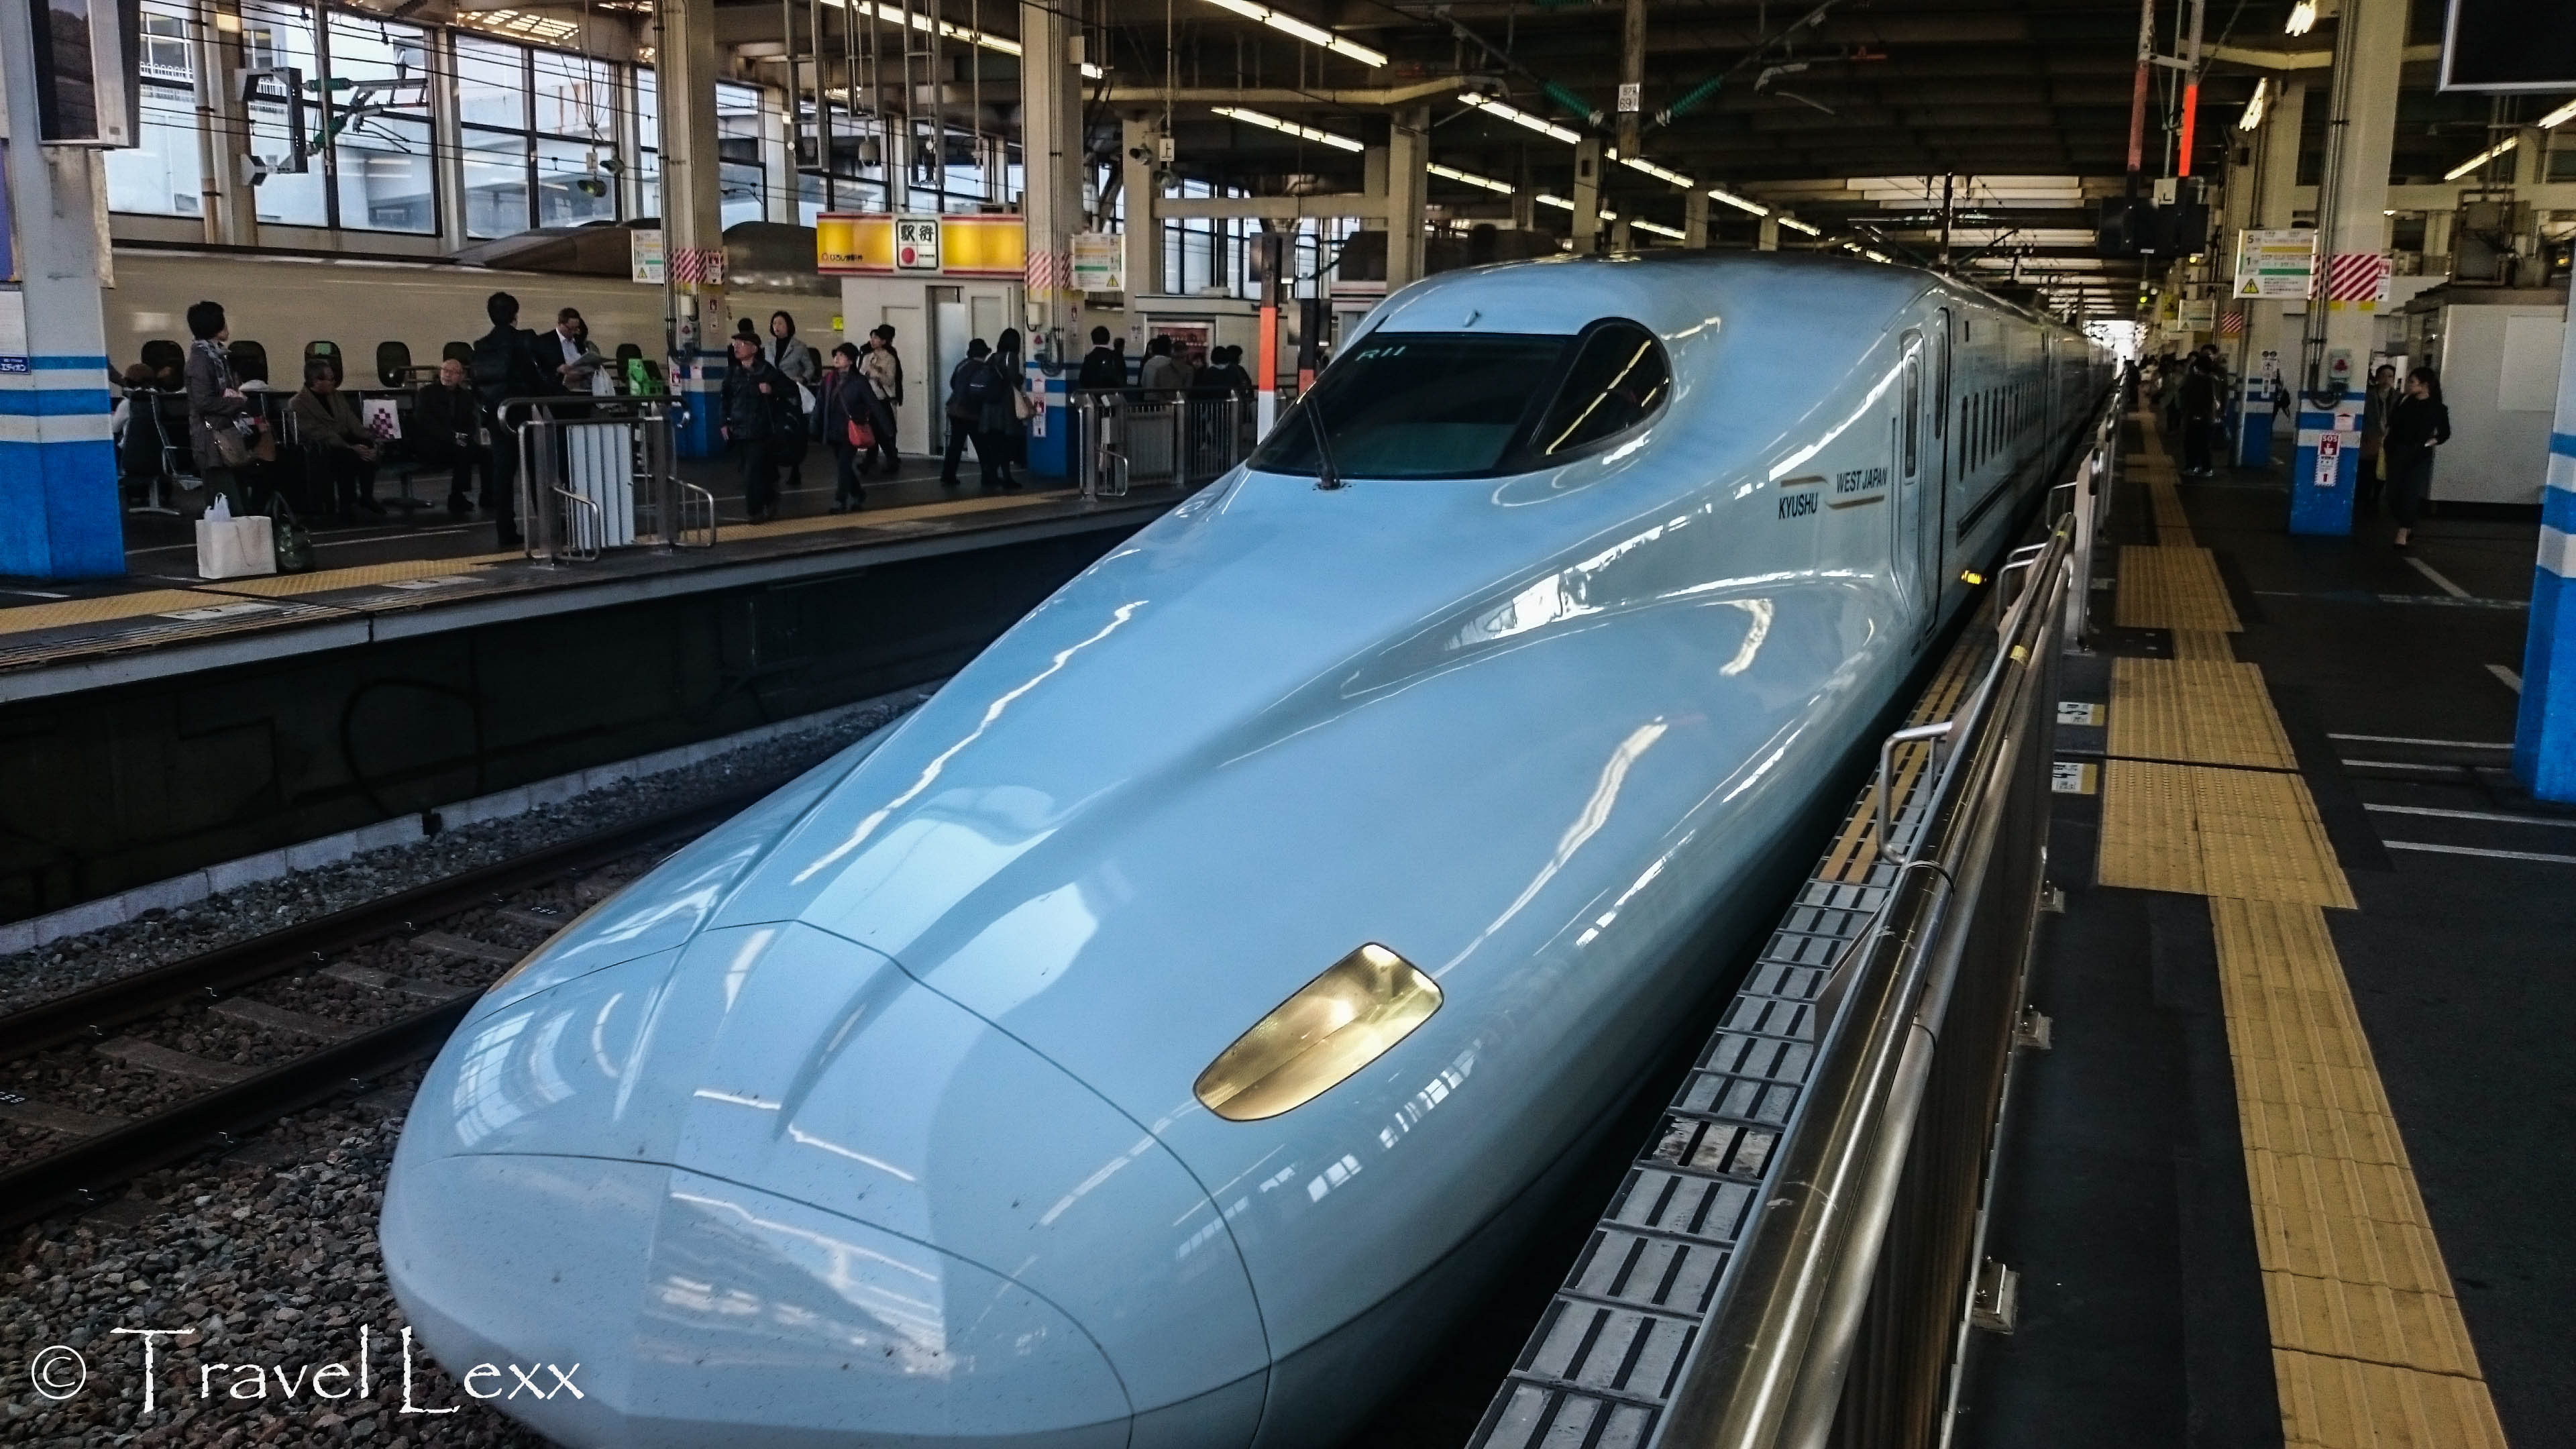 Bullet train - Ways to save money while travelling